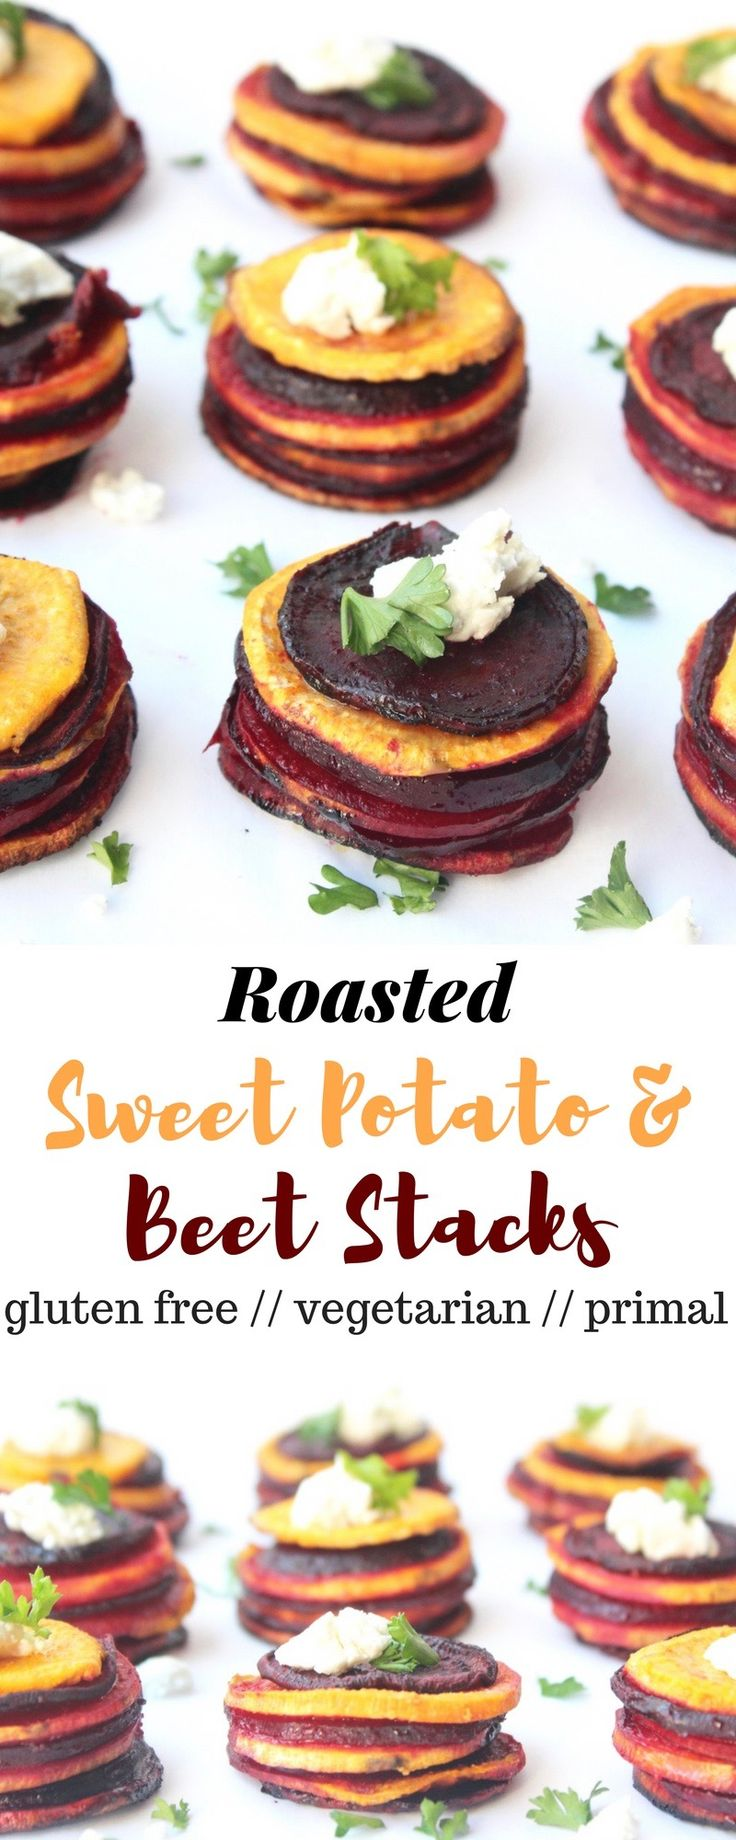 These Roasted Sweet Potato & Beet Stacks make a fun, easy, and healthy side dish for your holiday get-togethers - Eat the Gains